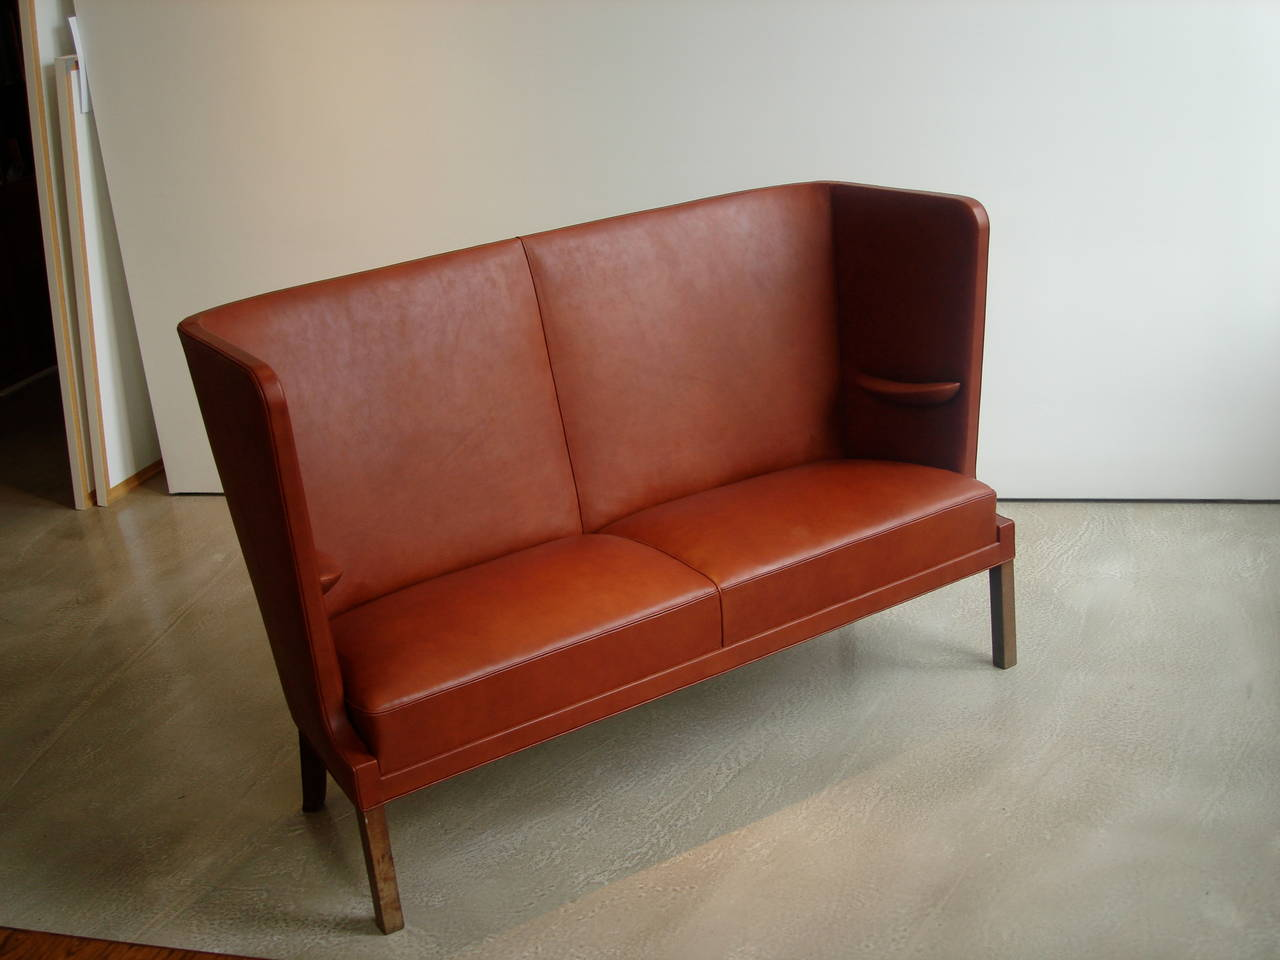 Mid-20th Century High Backed Sofa with Interior Armrests by Frits Henningsen, 1930s For Sale